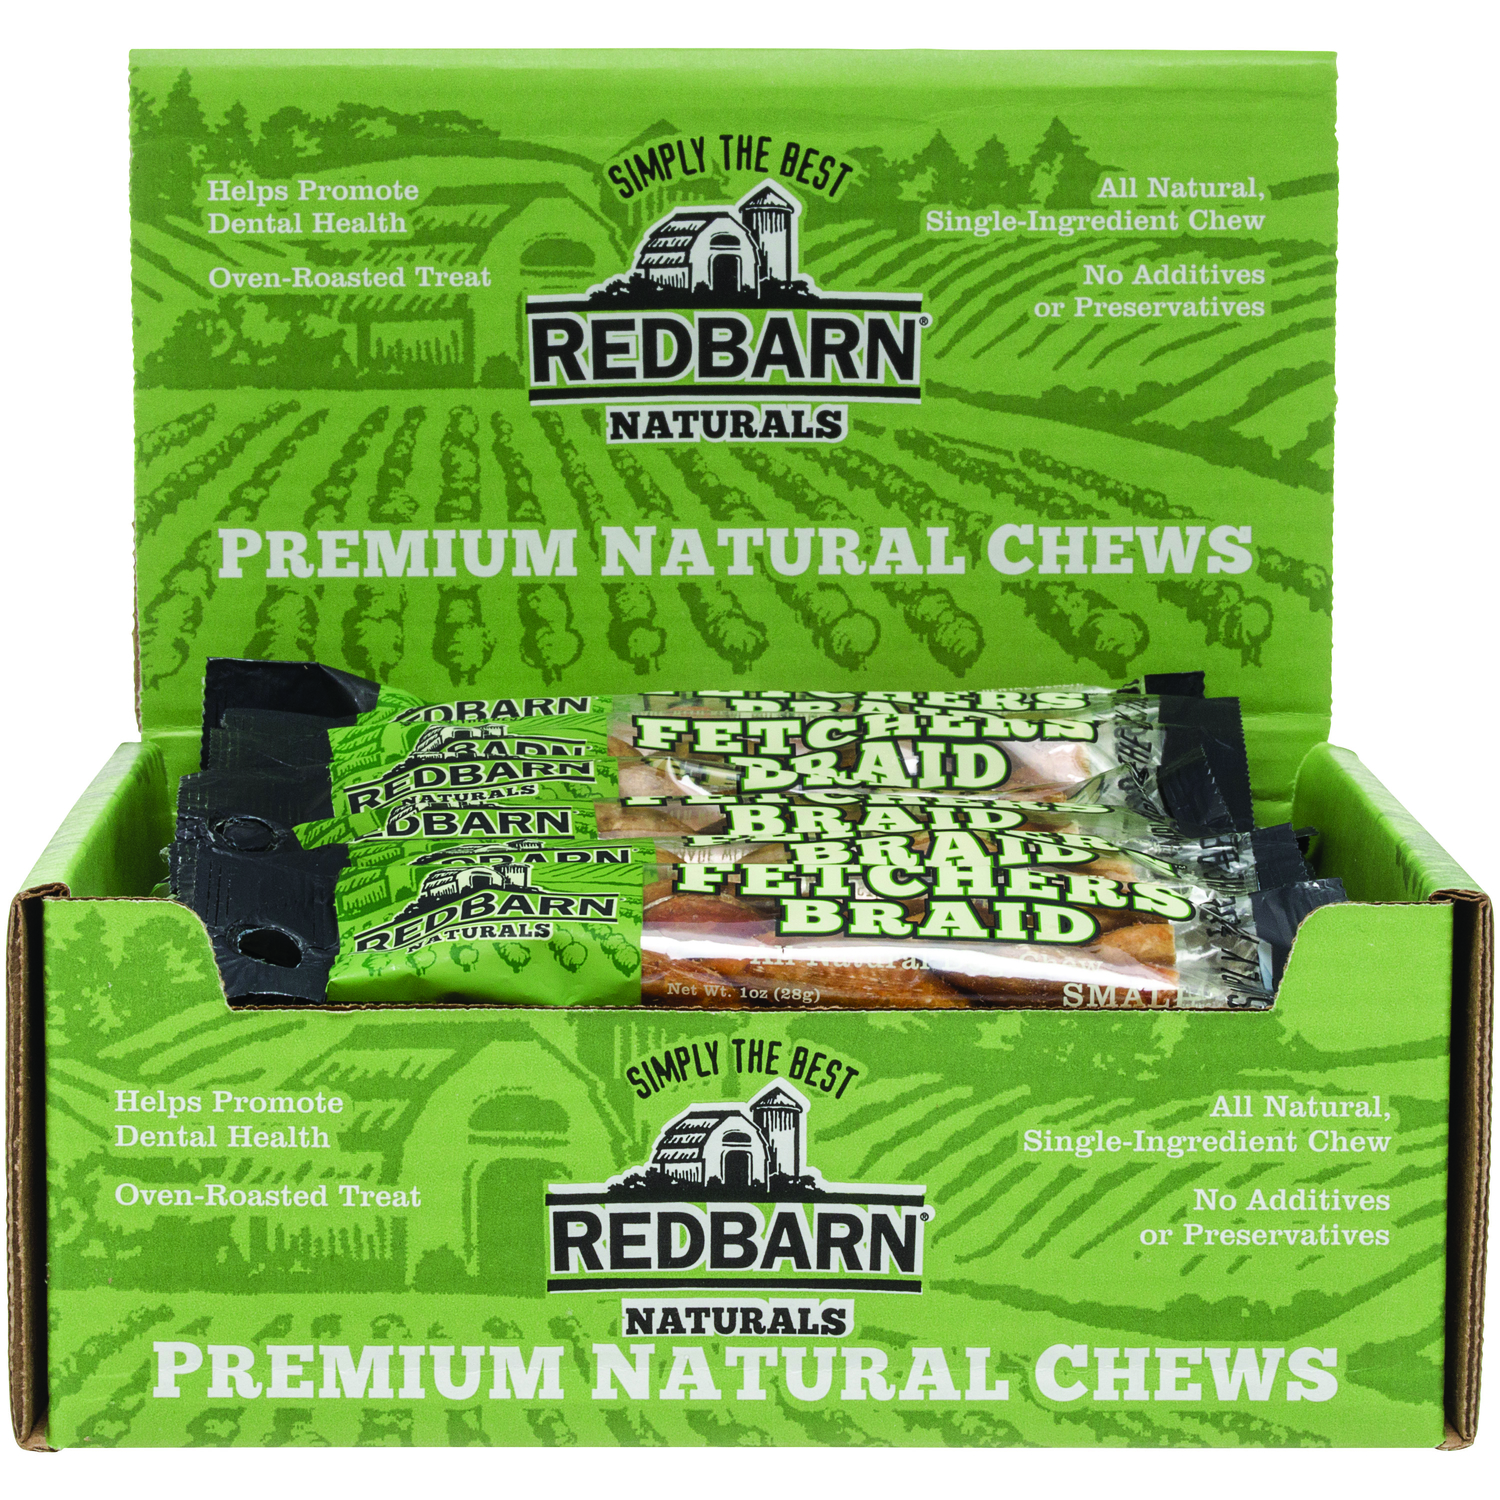 Redbarn  Naturals  Beef  Dog  Grain Free Chews  1 pk 1 pk